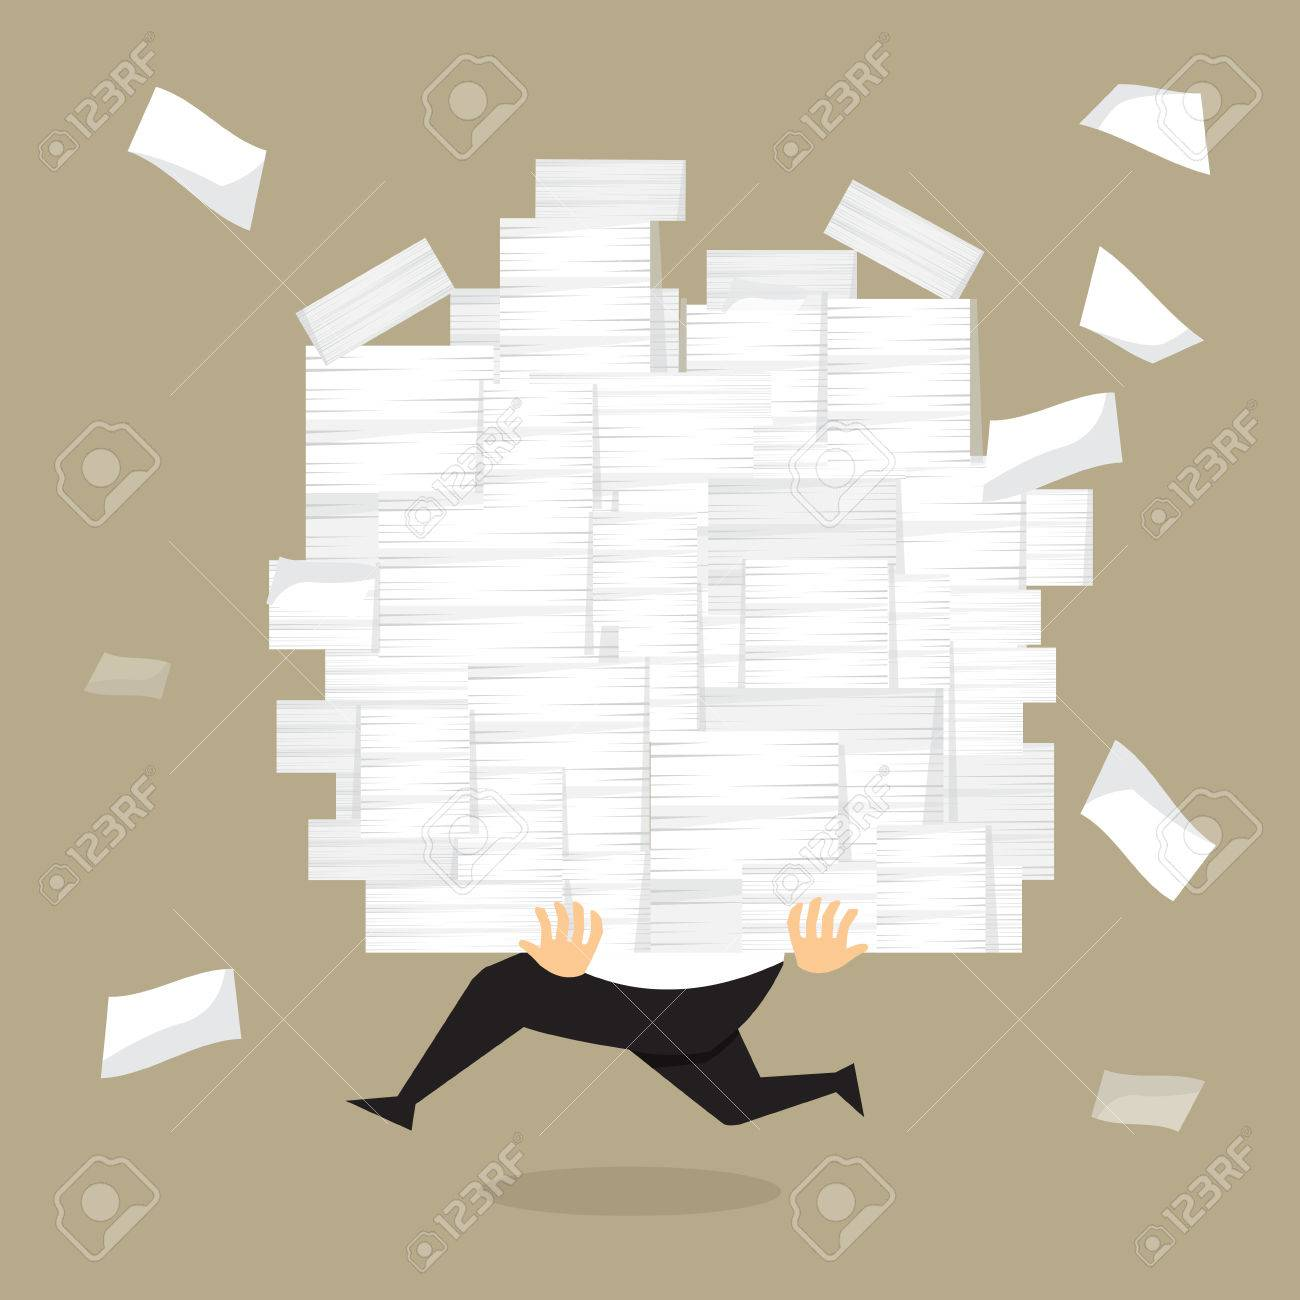 Businessman run holding a lot of documents in his hands.vector - 40245382